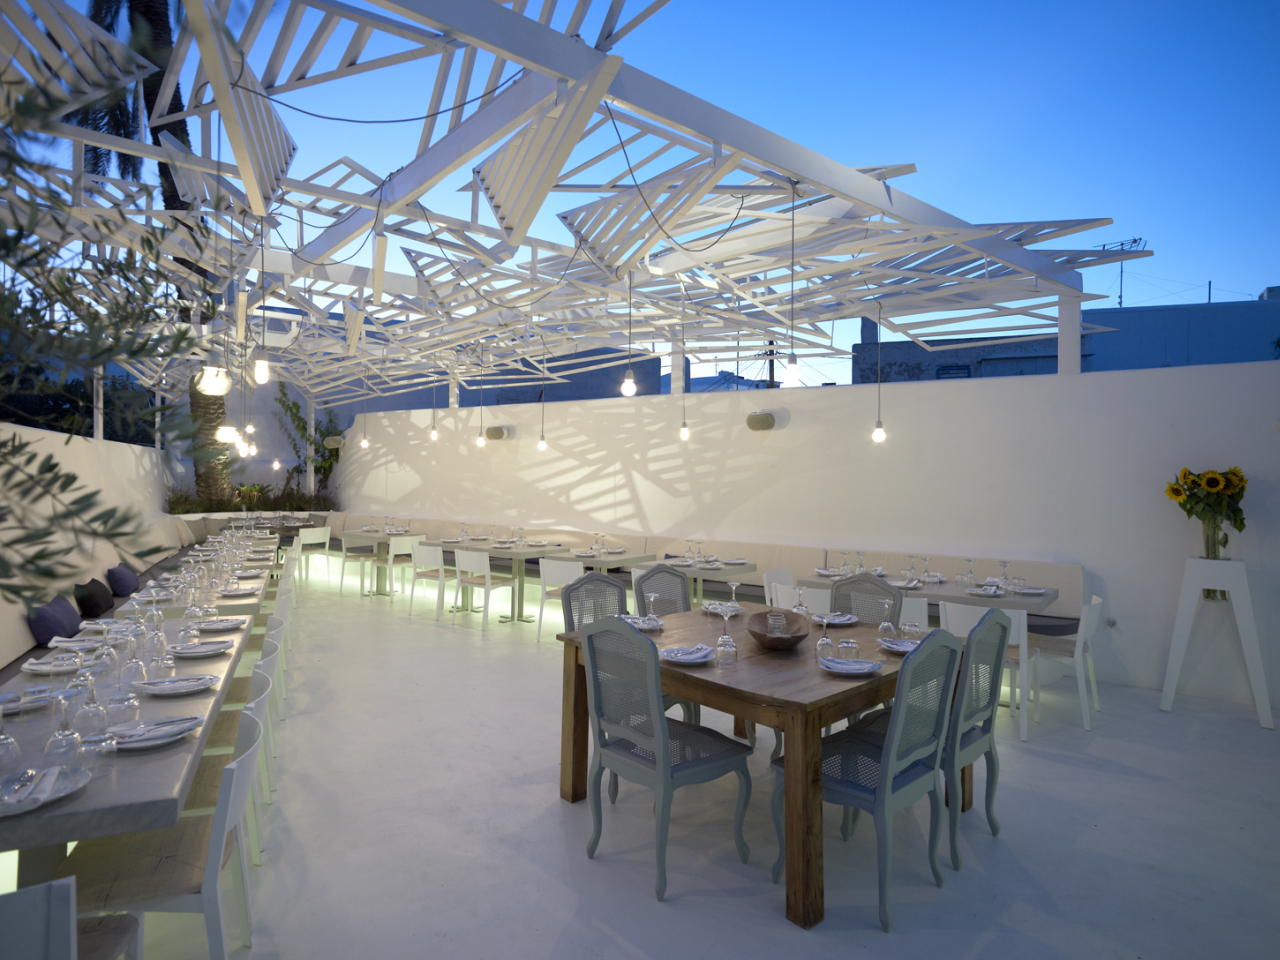 Phos Restaurant In Mykonos Town / LM Architects, © Vangelis Paterakis